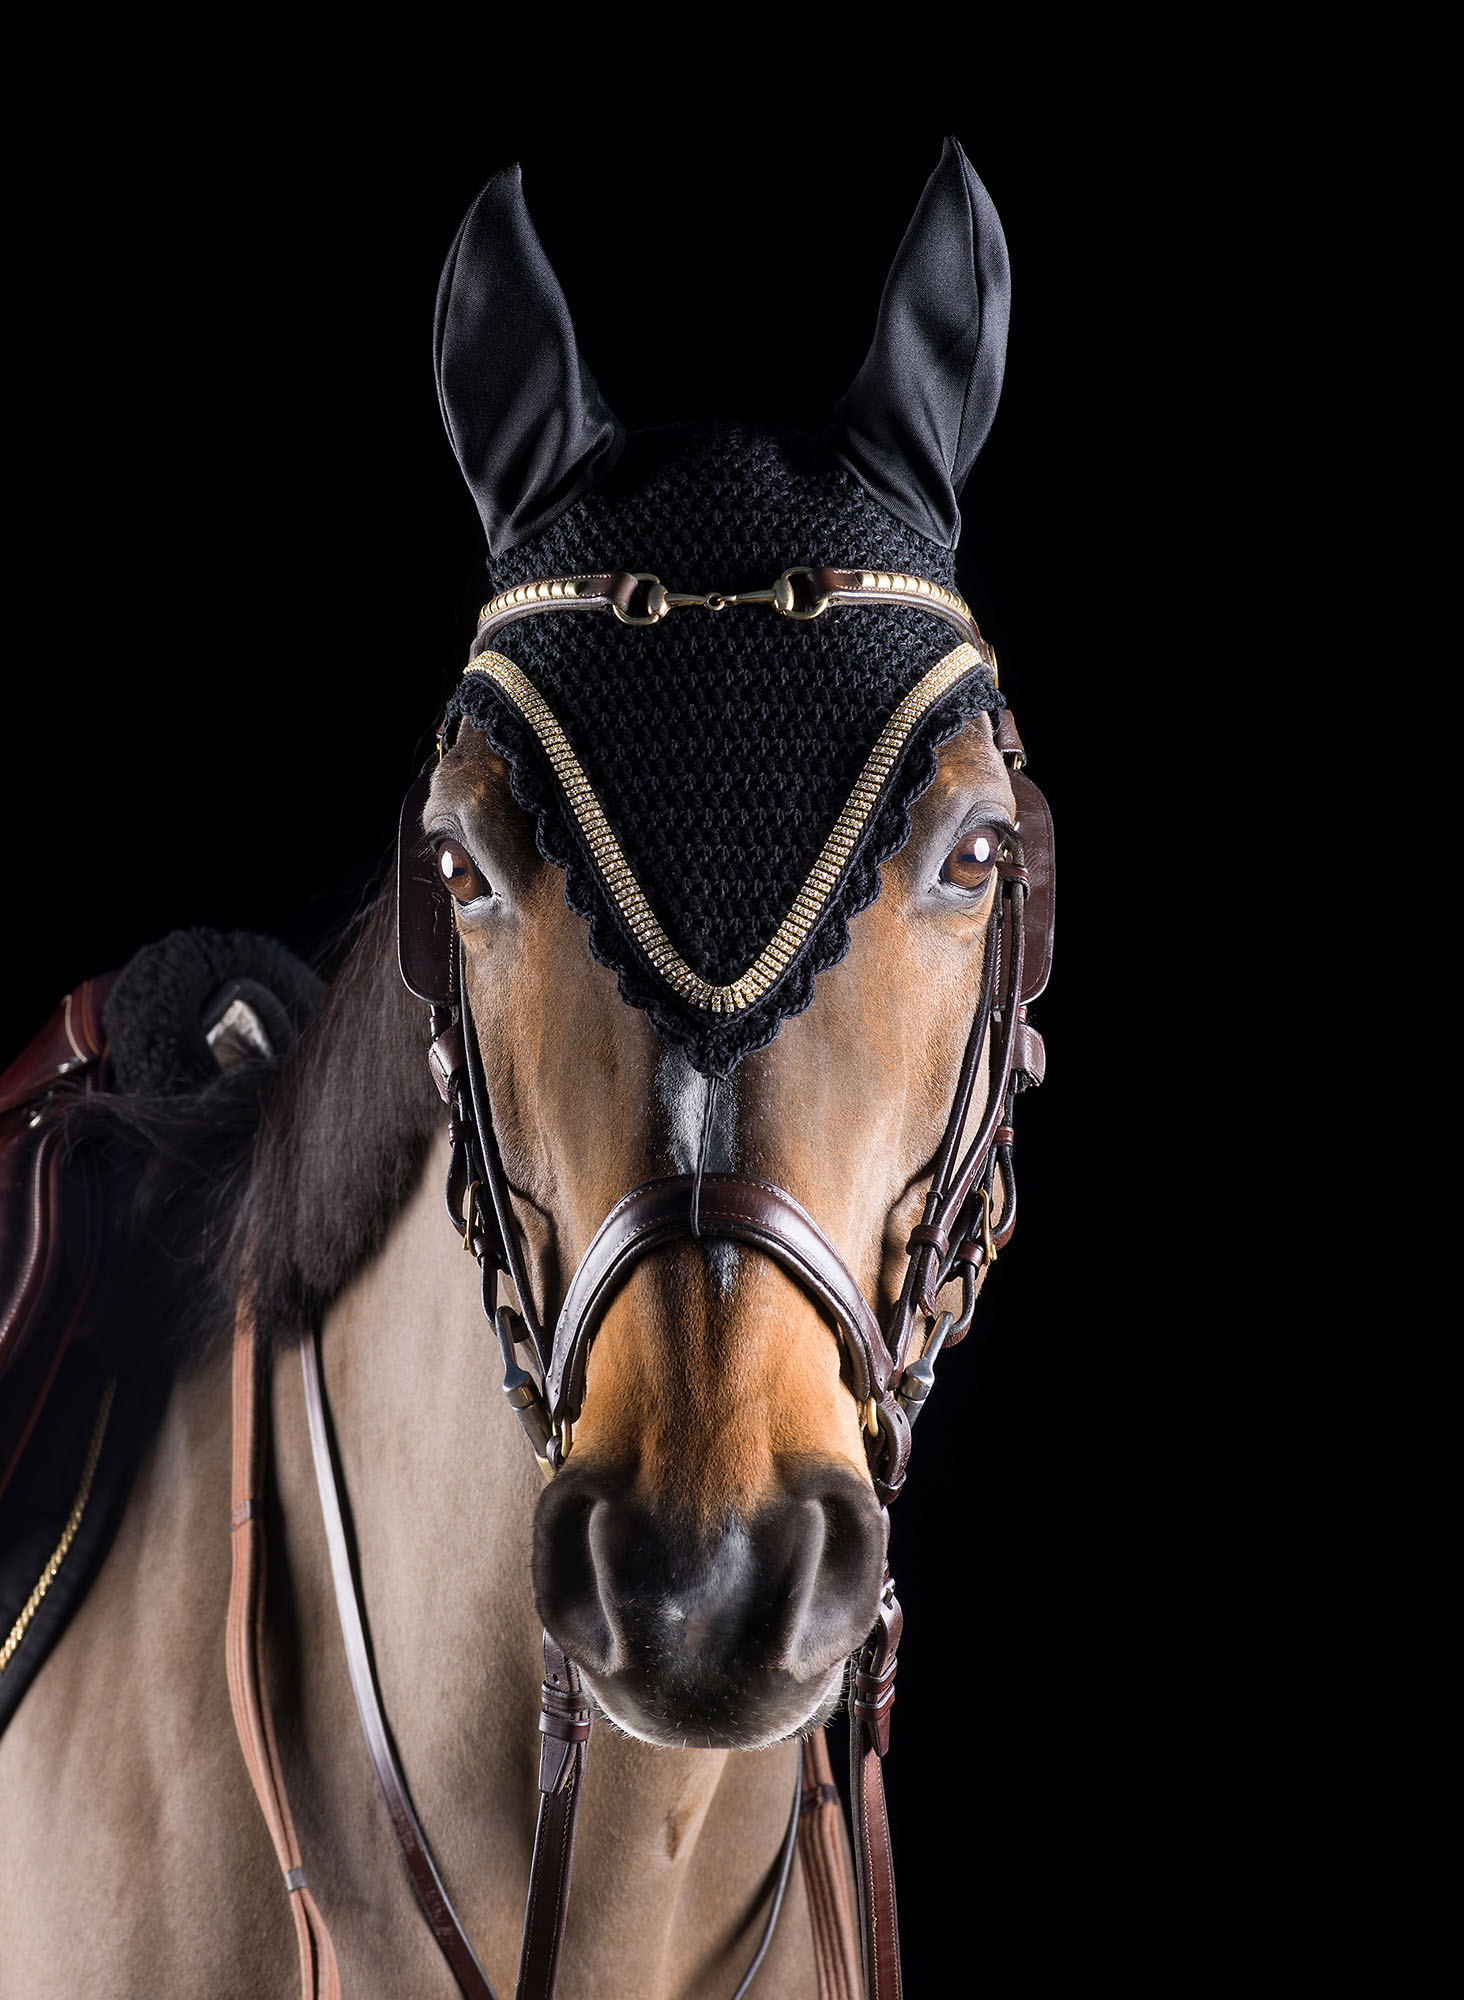 Horse-In-Uniform-Mark-Harvey-Photography